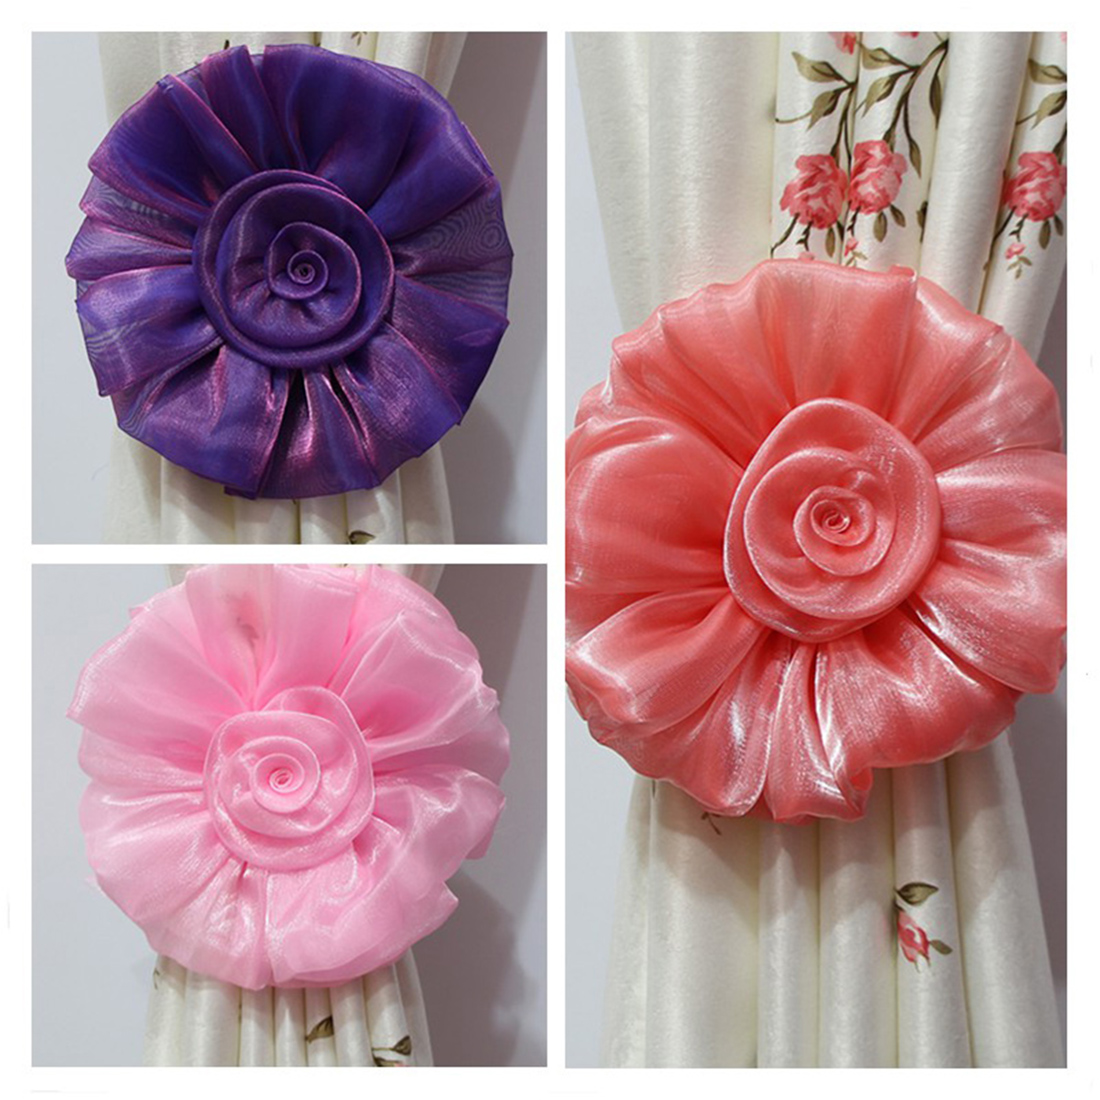 Pactical 9 colors Practical Fashion Window Curtain Tieback Clip-on Rose Flower Tie Holder Drape Decoration Home Decor